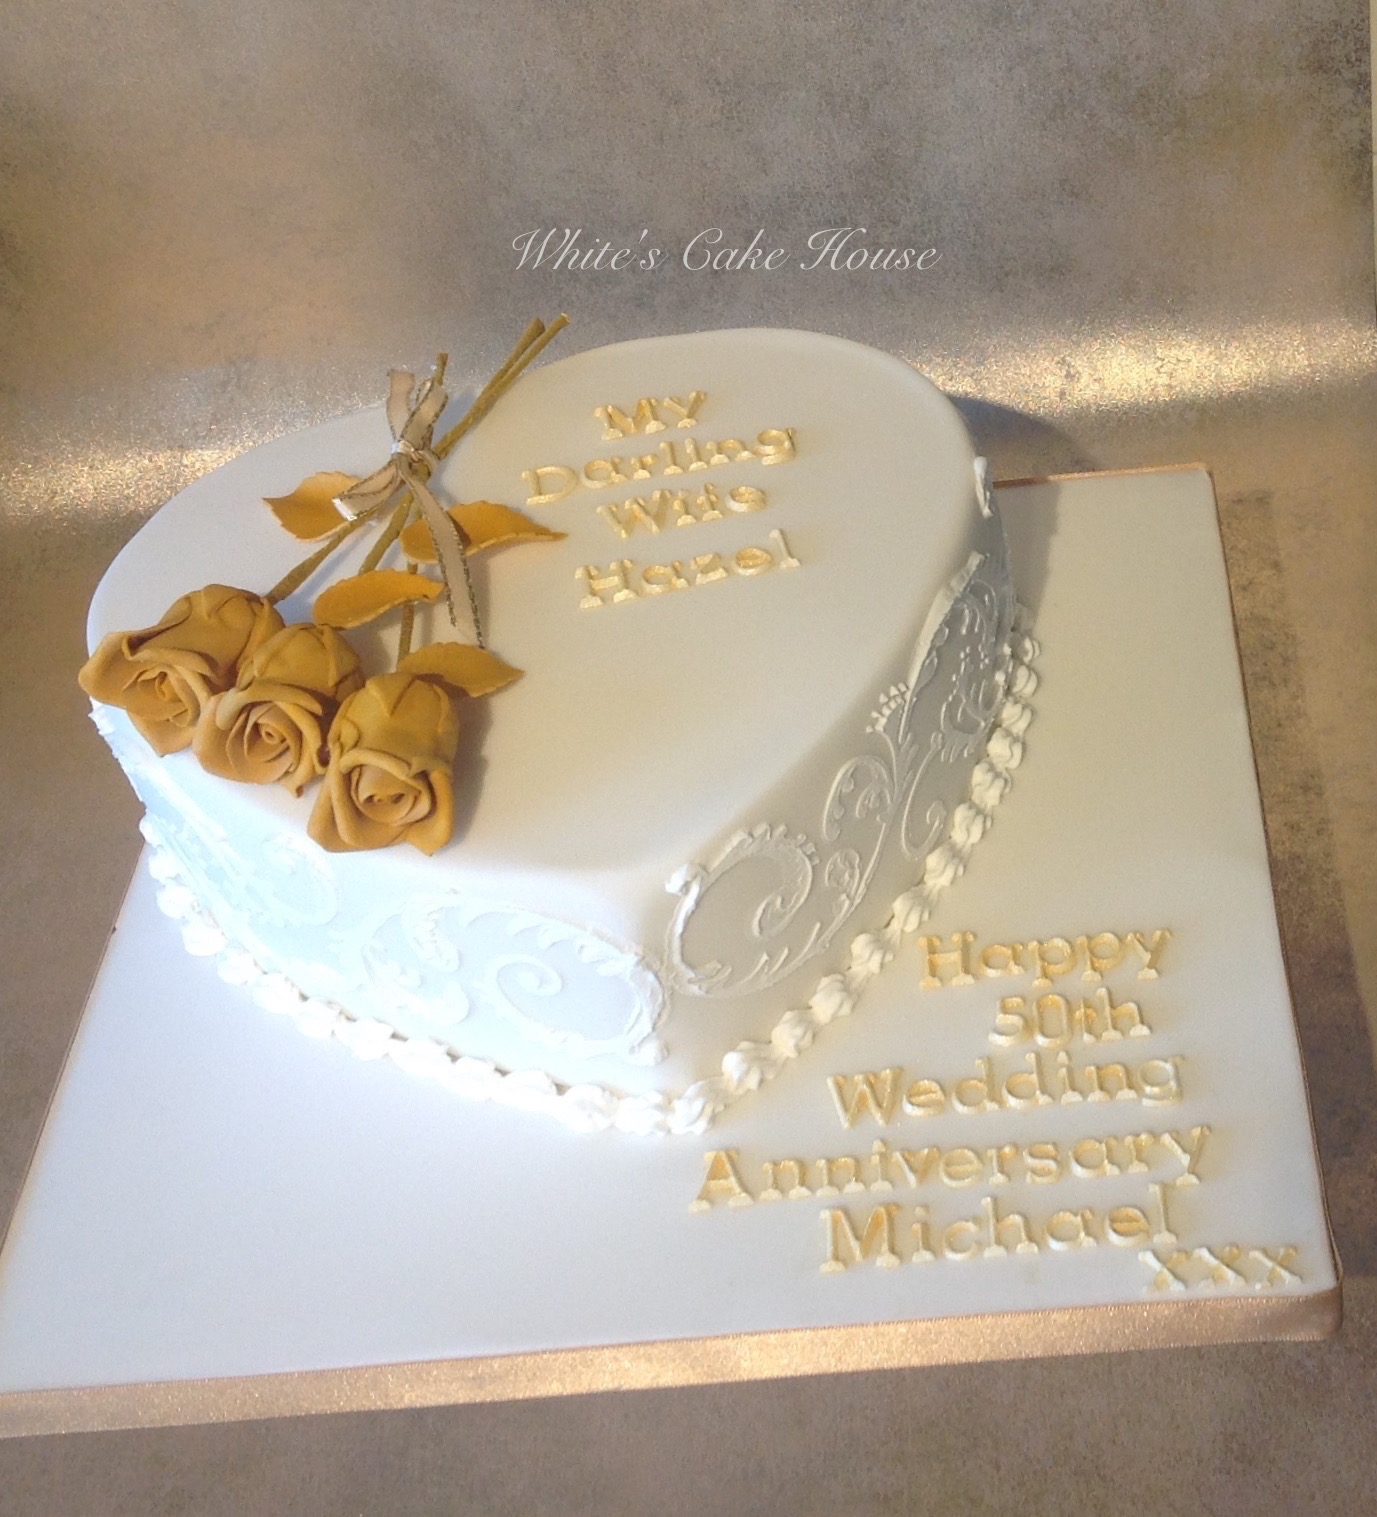 Cake Ideas For Wedding Anniversary: White's Cake House